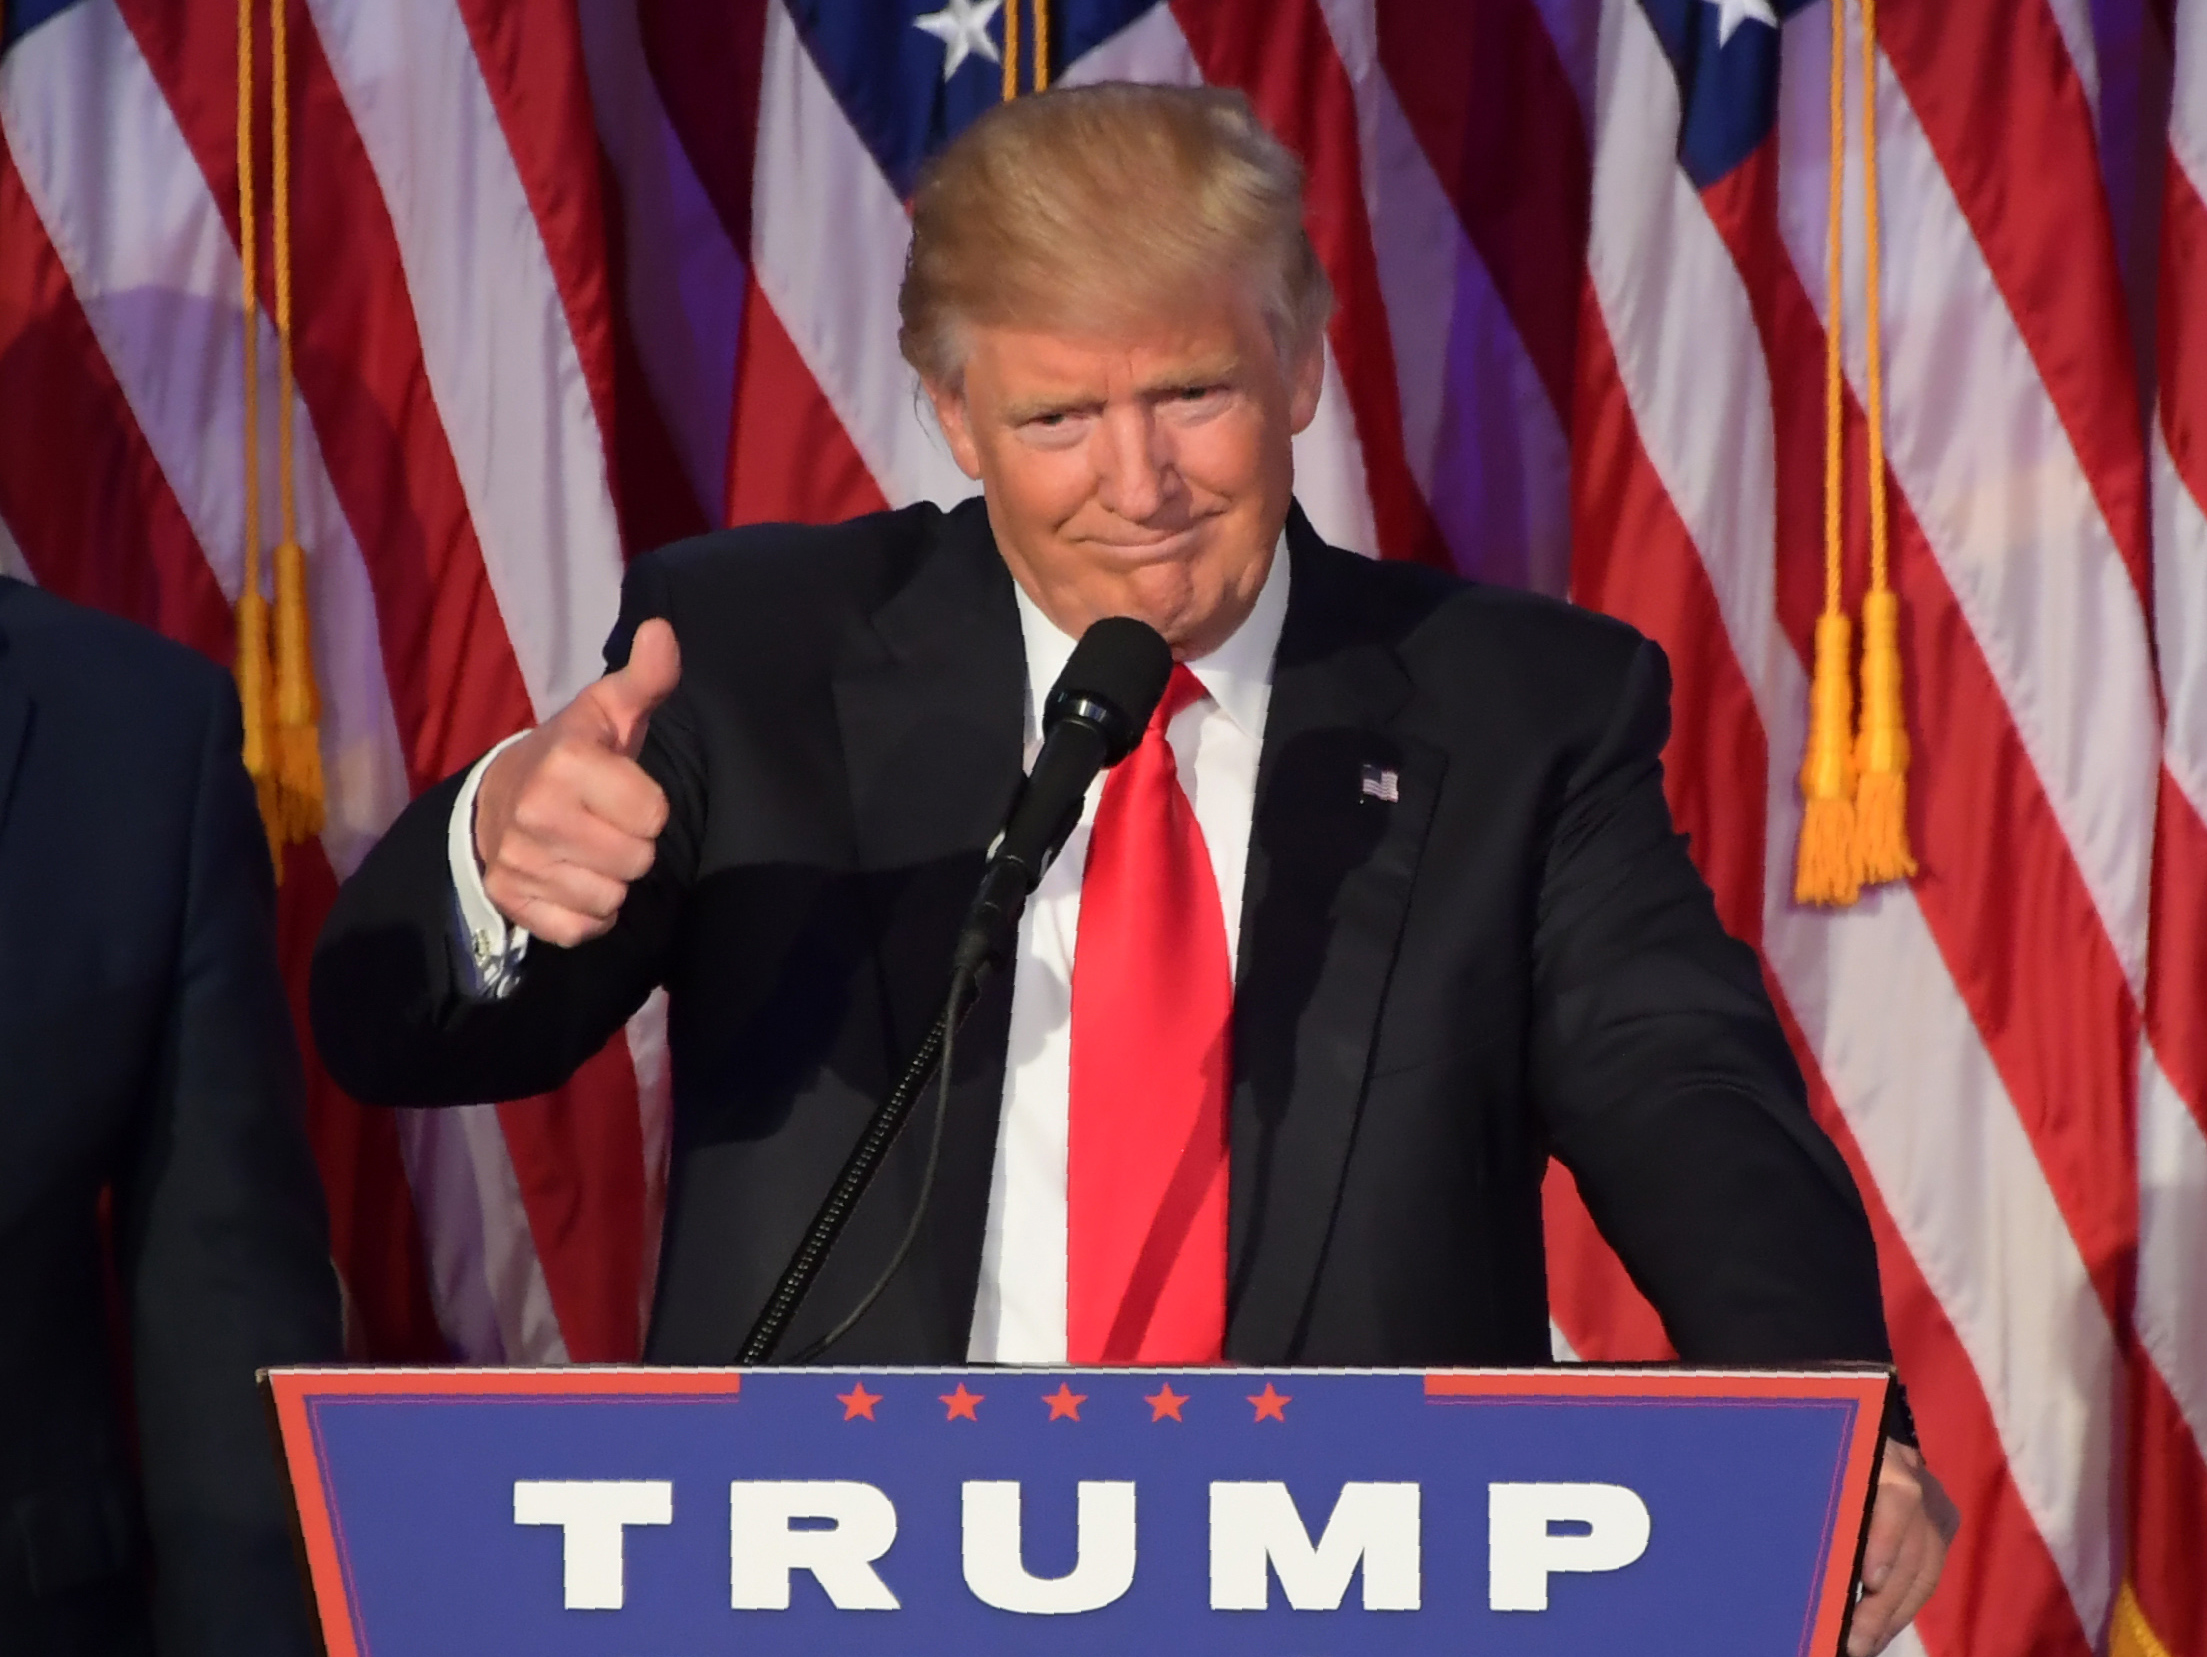 Trump campaign confirms Election Night party to be held at his Washington D.C. hotel